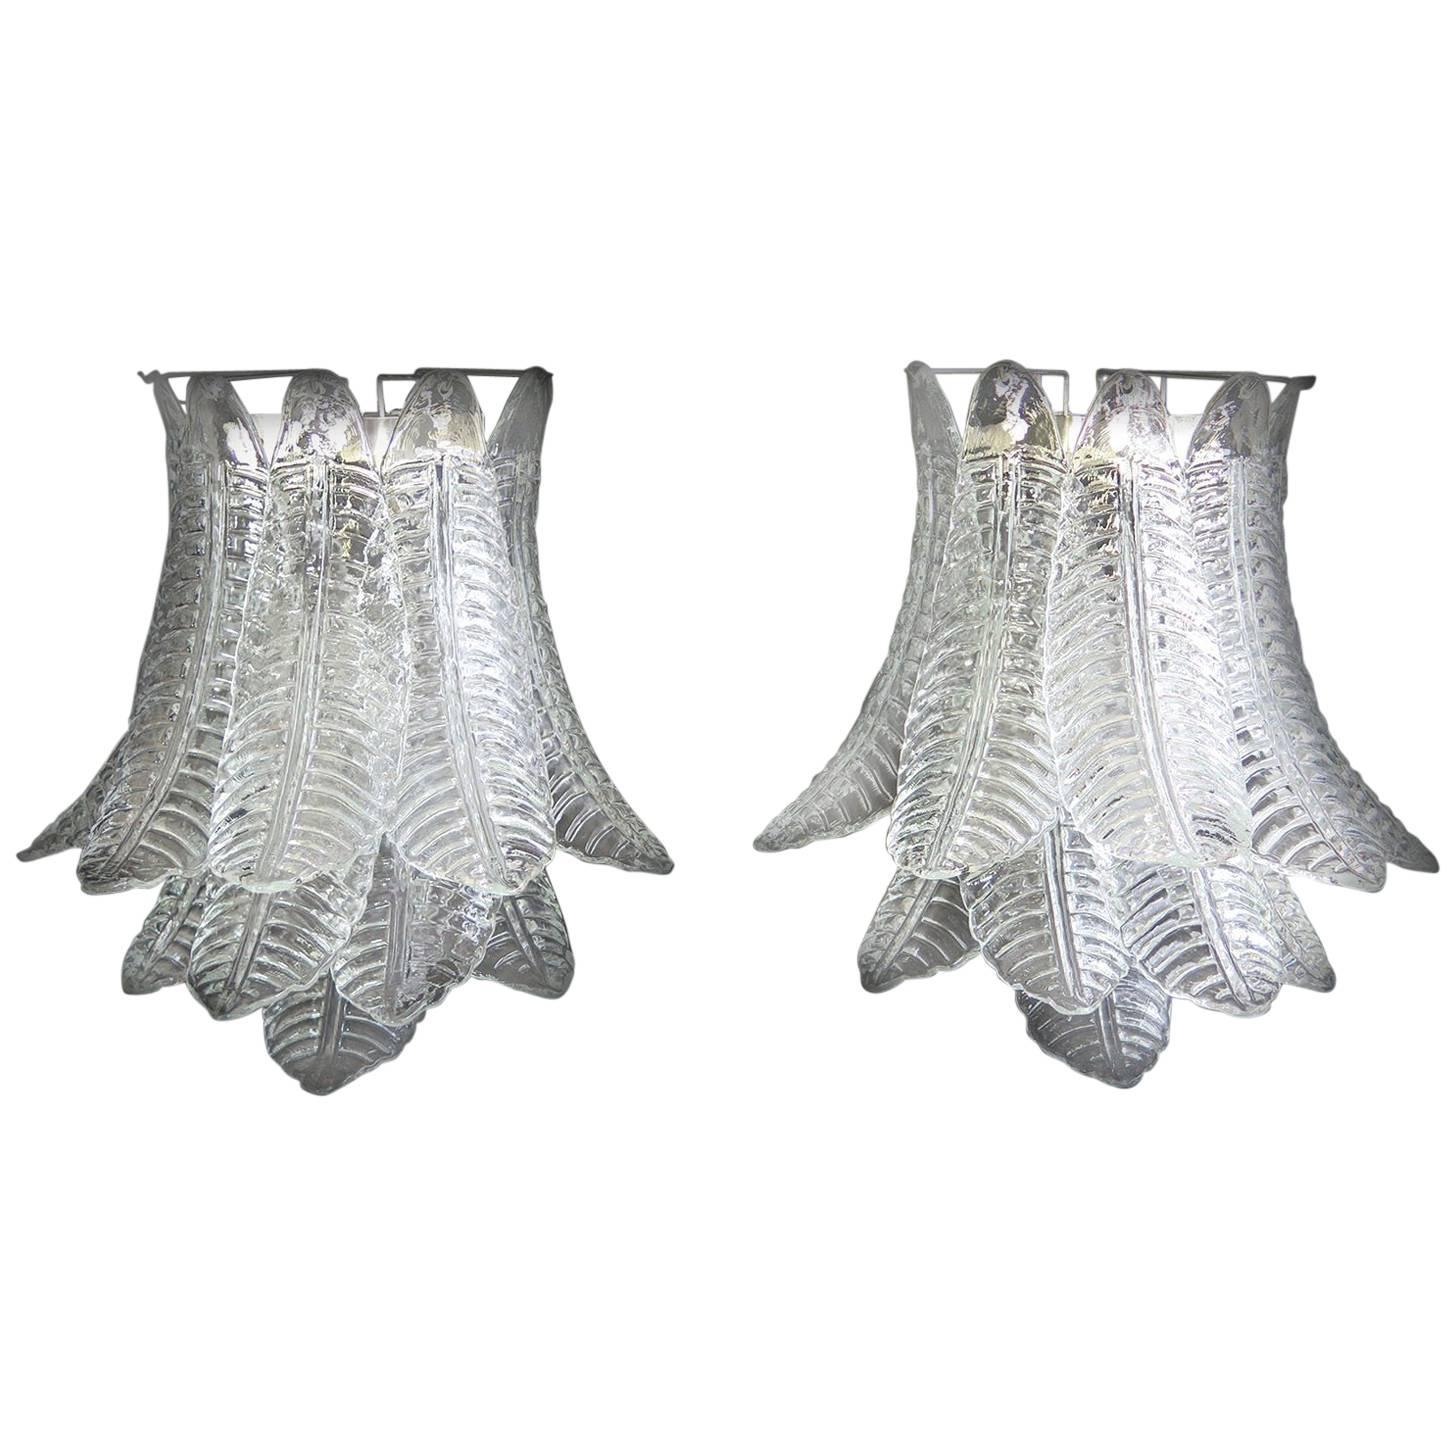 Pair of Italian Felci Leaves Sconces, Barovier & Toso Style, Murano